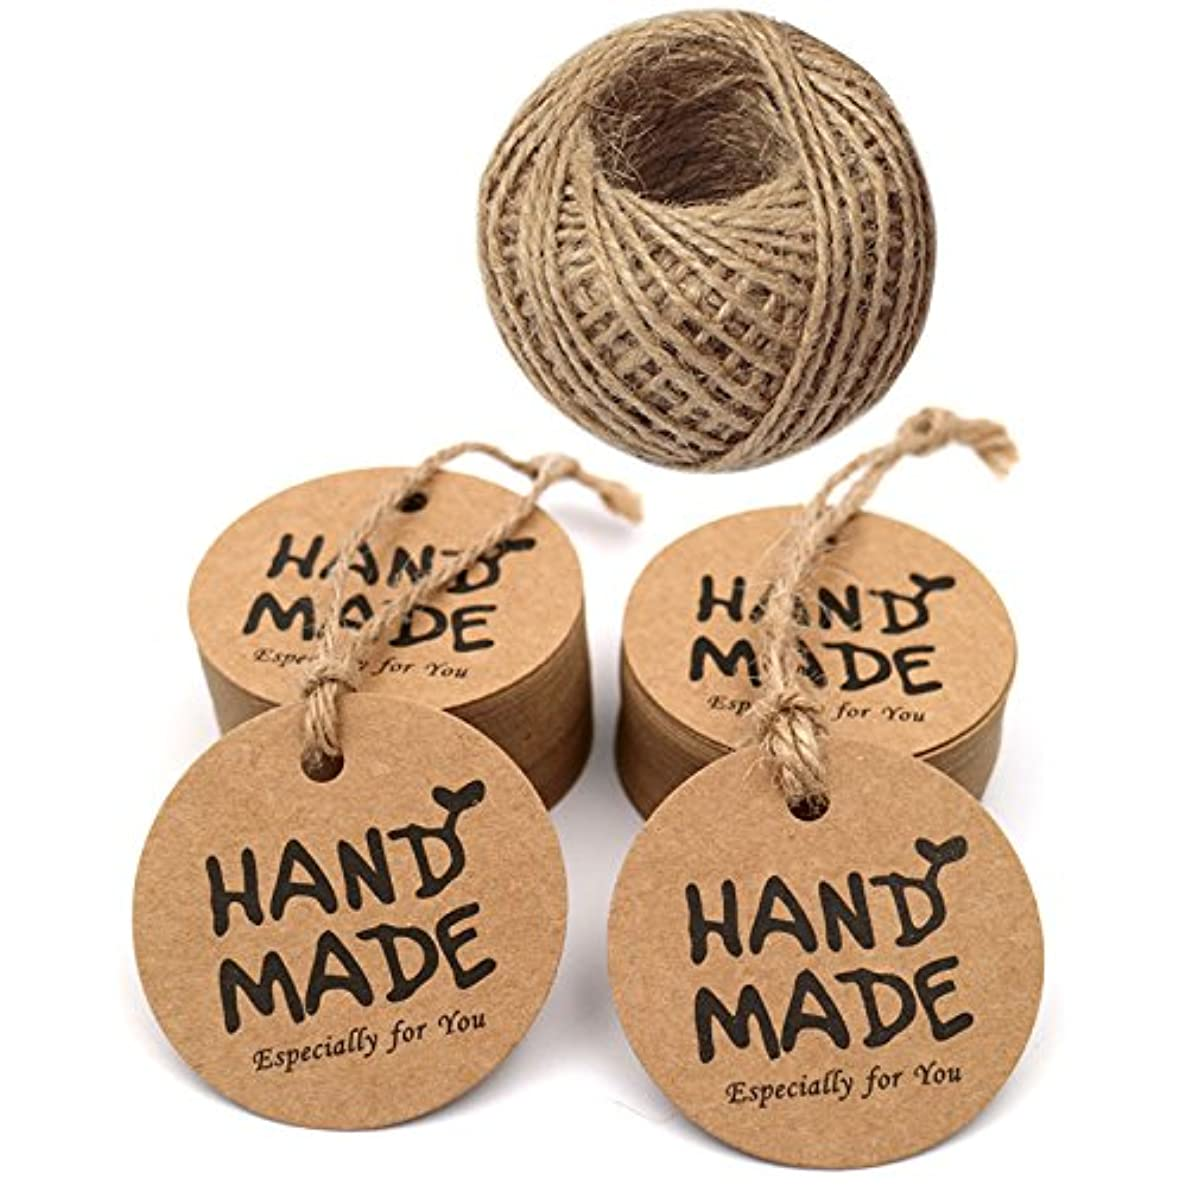 Handmade Tags,Gift Wrap Tags,100 Pcs Hand Made Especially for You Kraft Paper Round Gift Tags with 100 Feet Jute Twine (Brown)